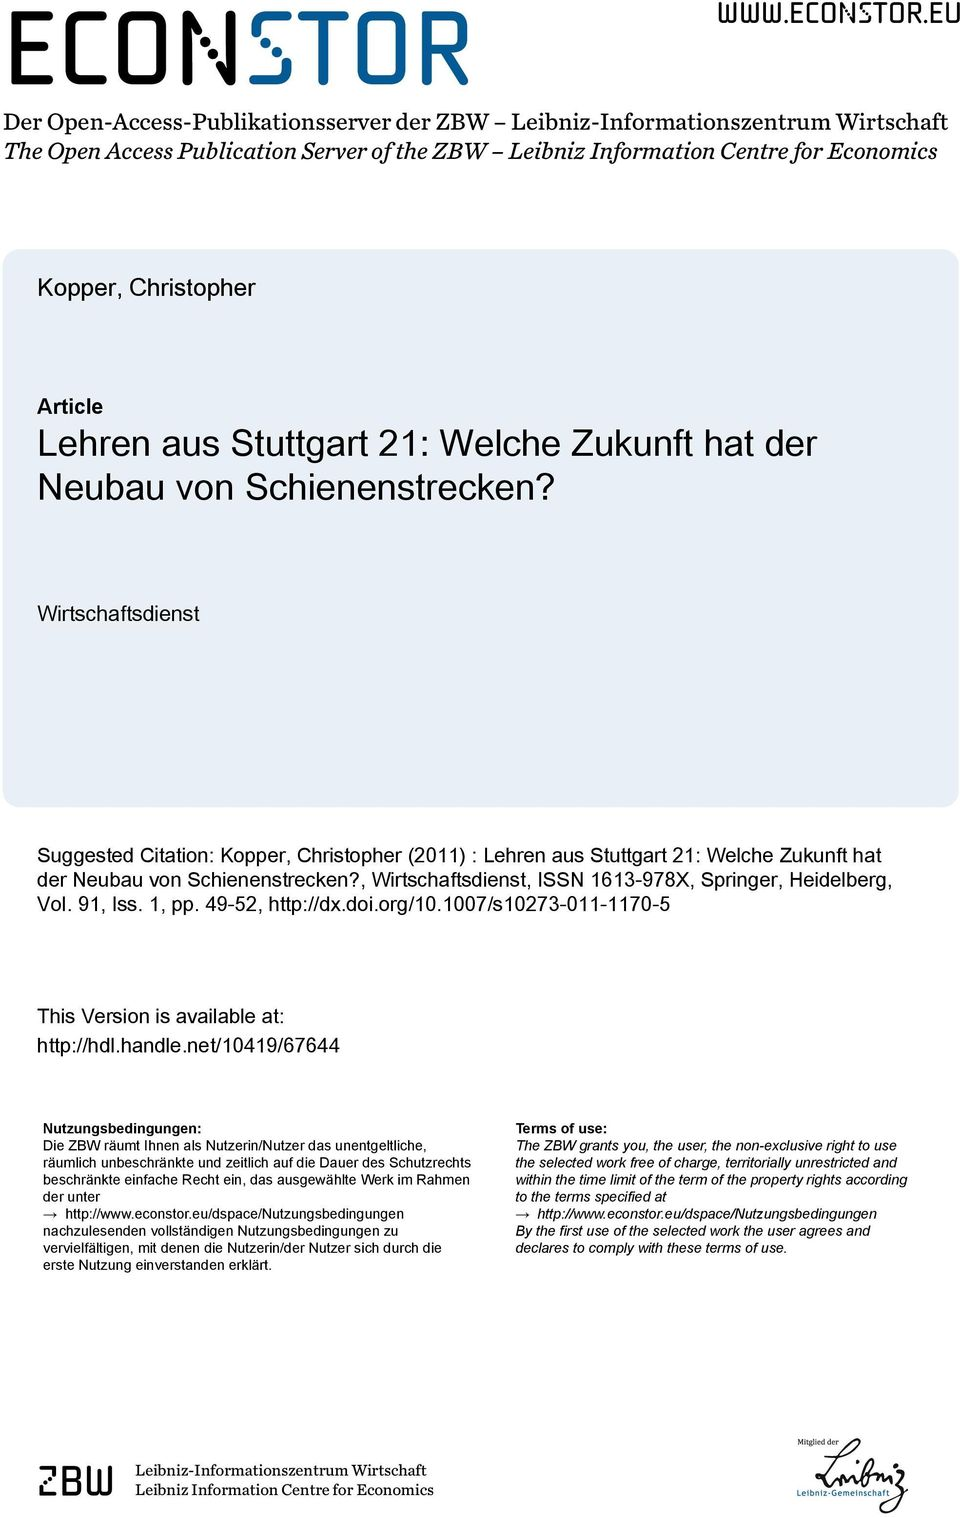 eu Der Open-Access-Publikationsserver der ZBW Leibniz-Informationszentrum Wirtschaft The Open Access Publication Server of the ZBW Leibniz Information Centre for Economics Kopper, Christopher Article